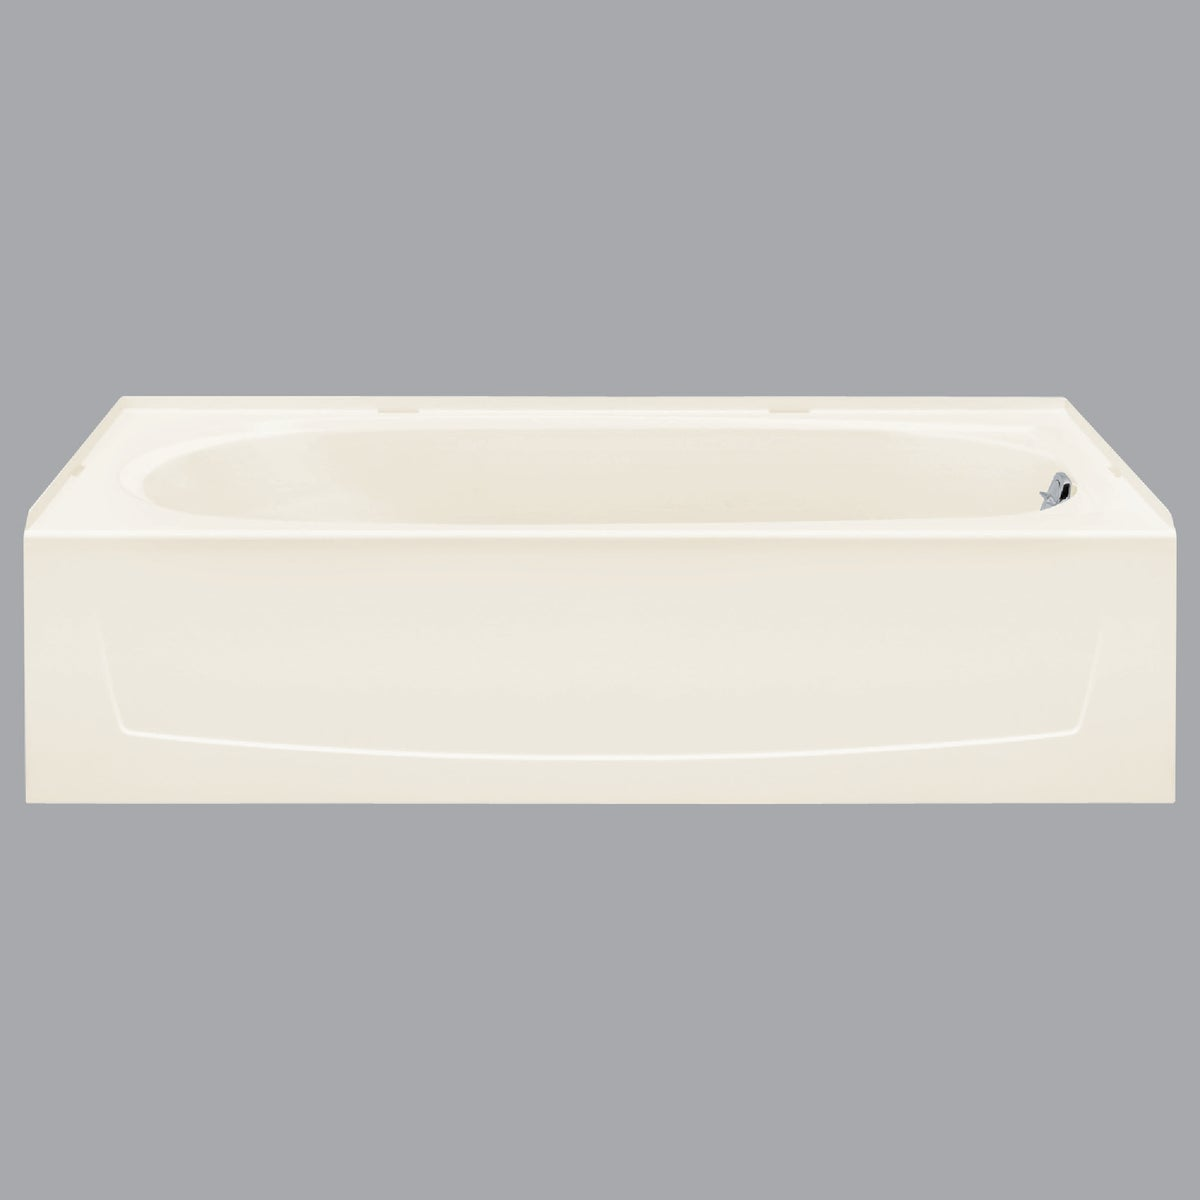 WHT PERFORMA RH TUB - 71041120-0 by Sterling Pbg/vikrell